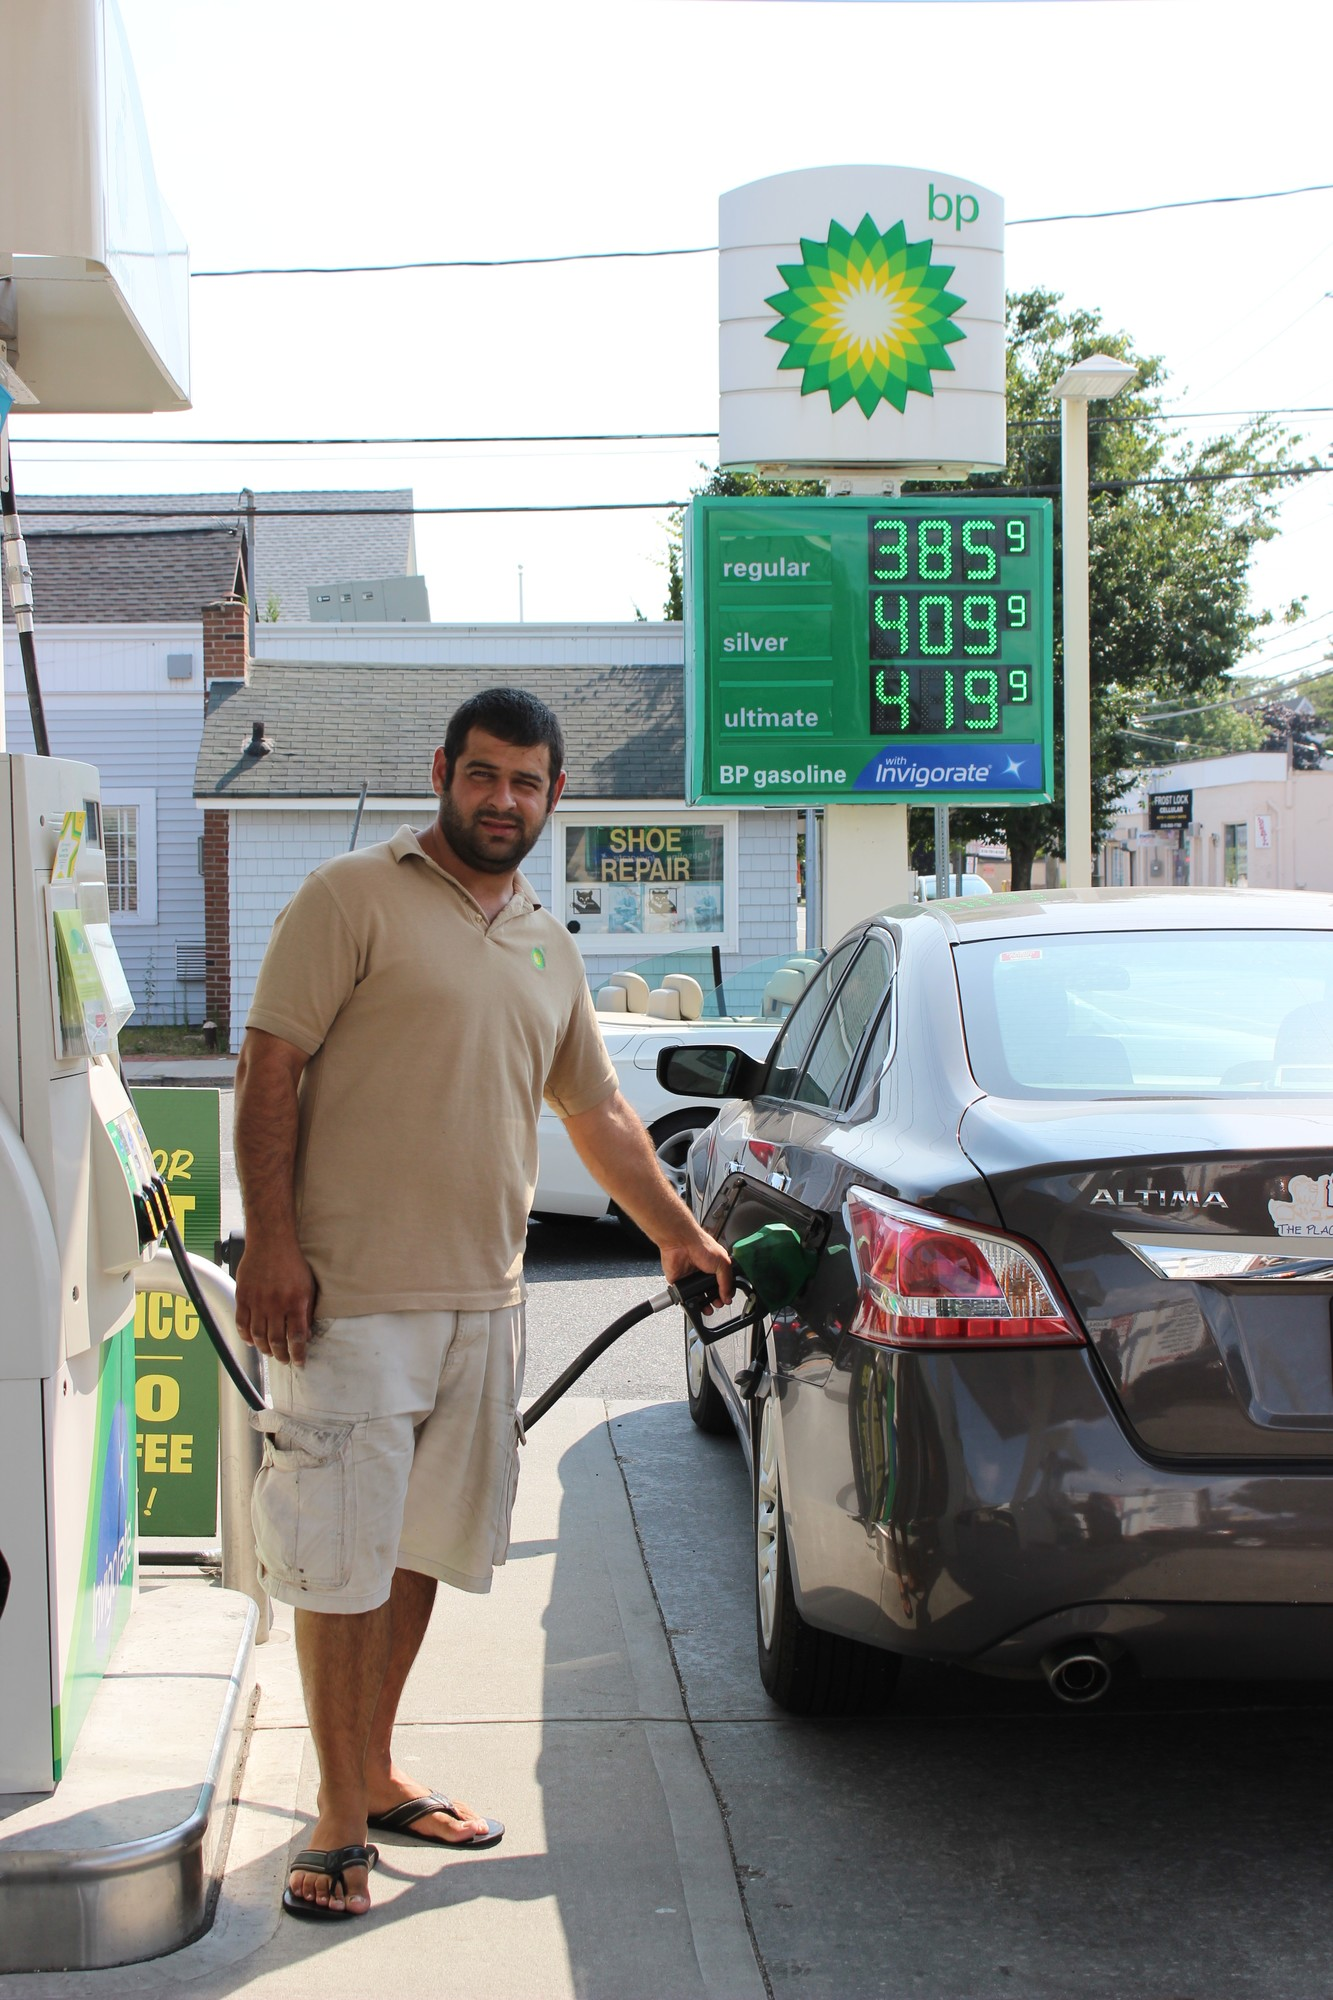 Five Towns motorists are the beneficiaries of an uncommon occurrence: lower summer gas prices. Above, Hewlett BP gas station attendant John Mavruk filled up a customer's gas tank.